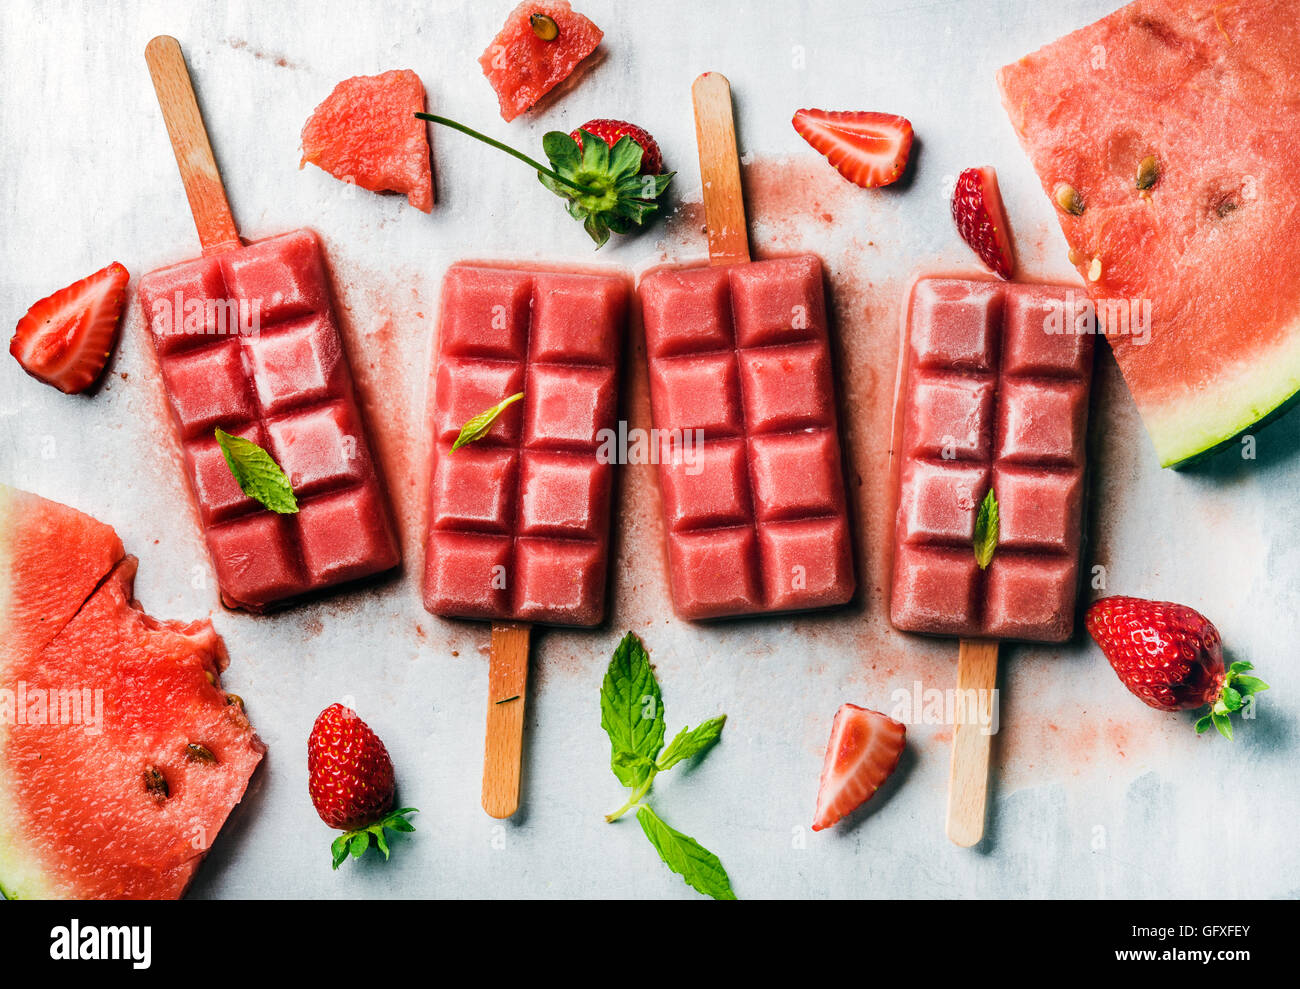 Strawberry watermelon ice cream popsicles with mint over steel tray background Stock Photo